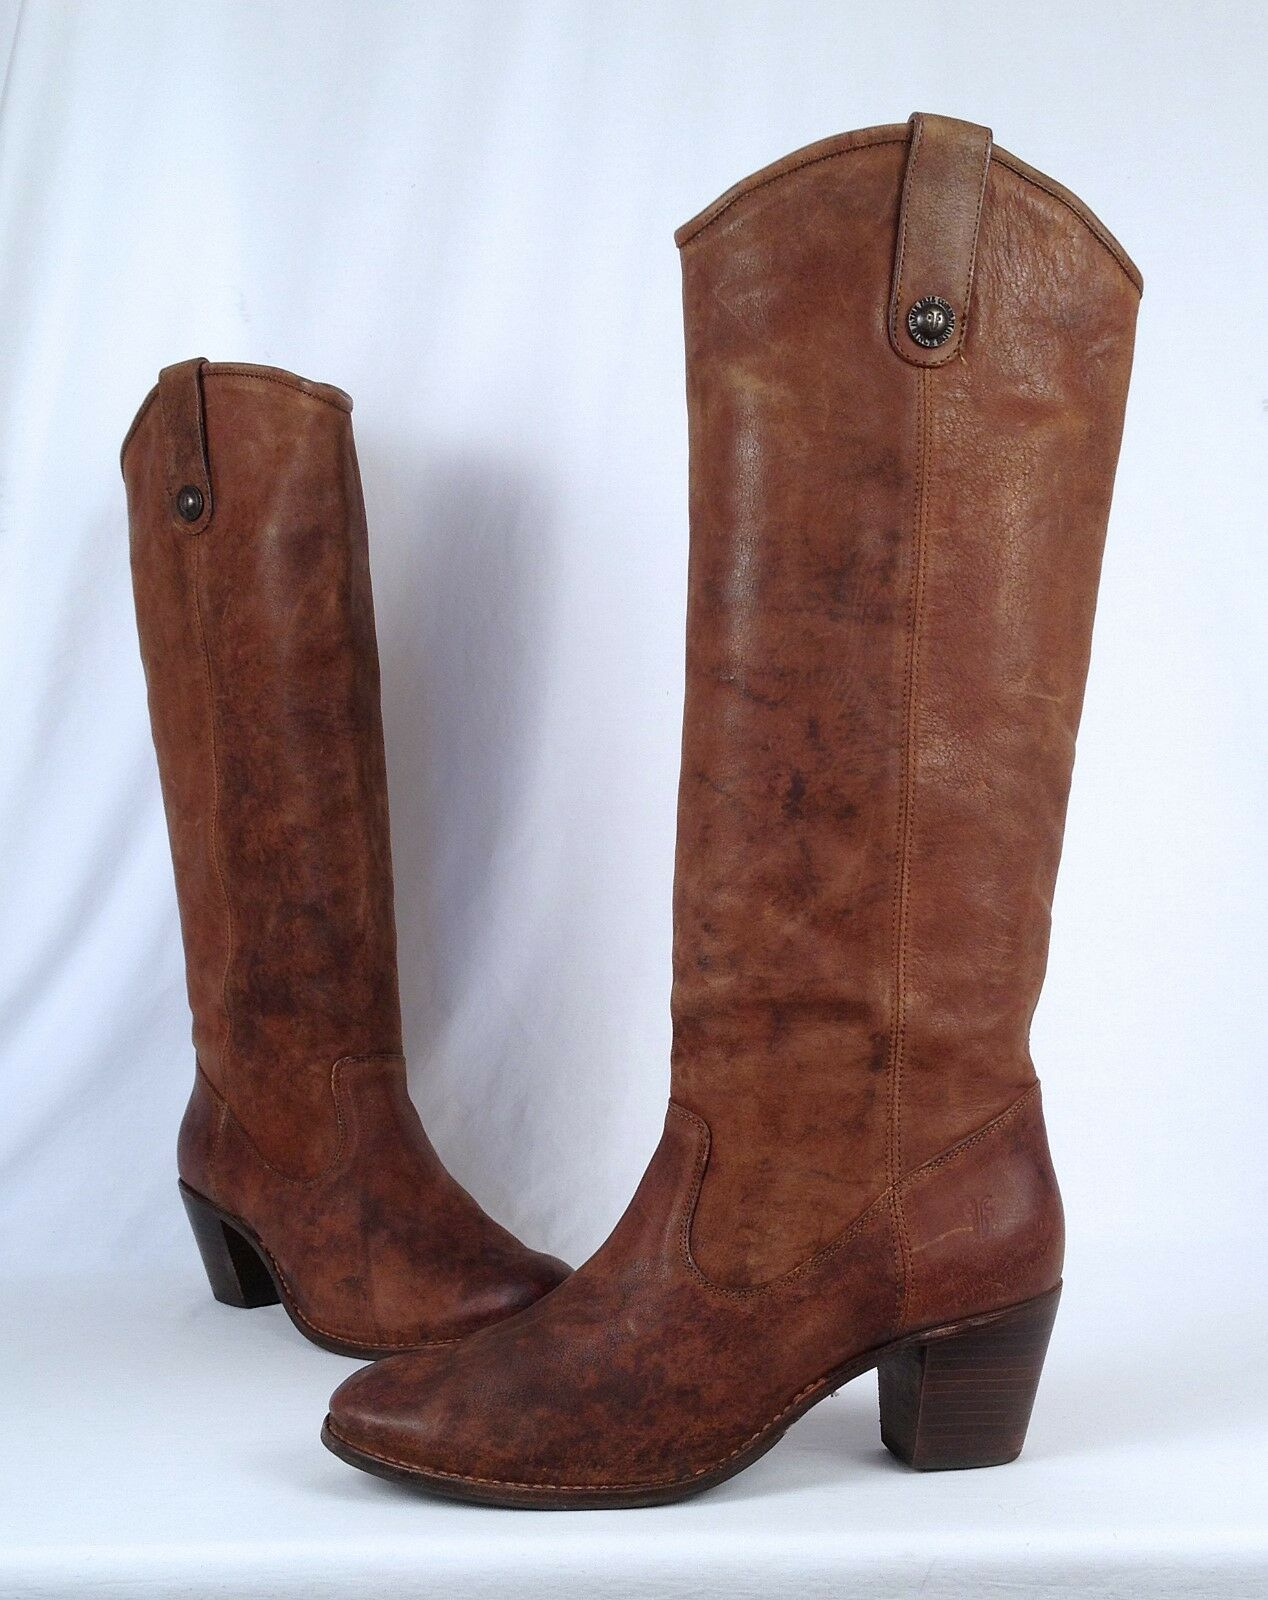 Frye 'Jackie' Button Boot- Brown Nubuck- Size 11 B   (B14)